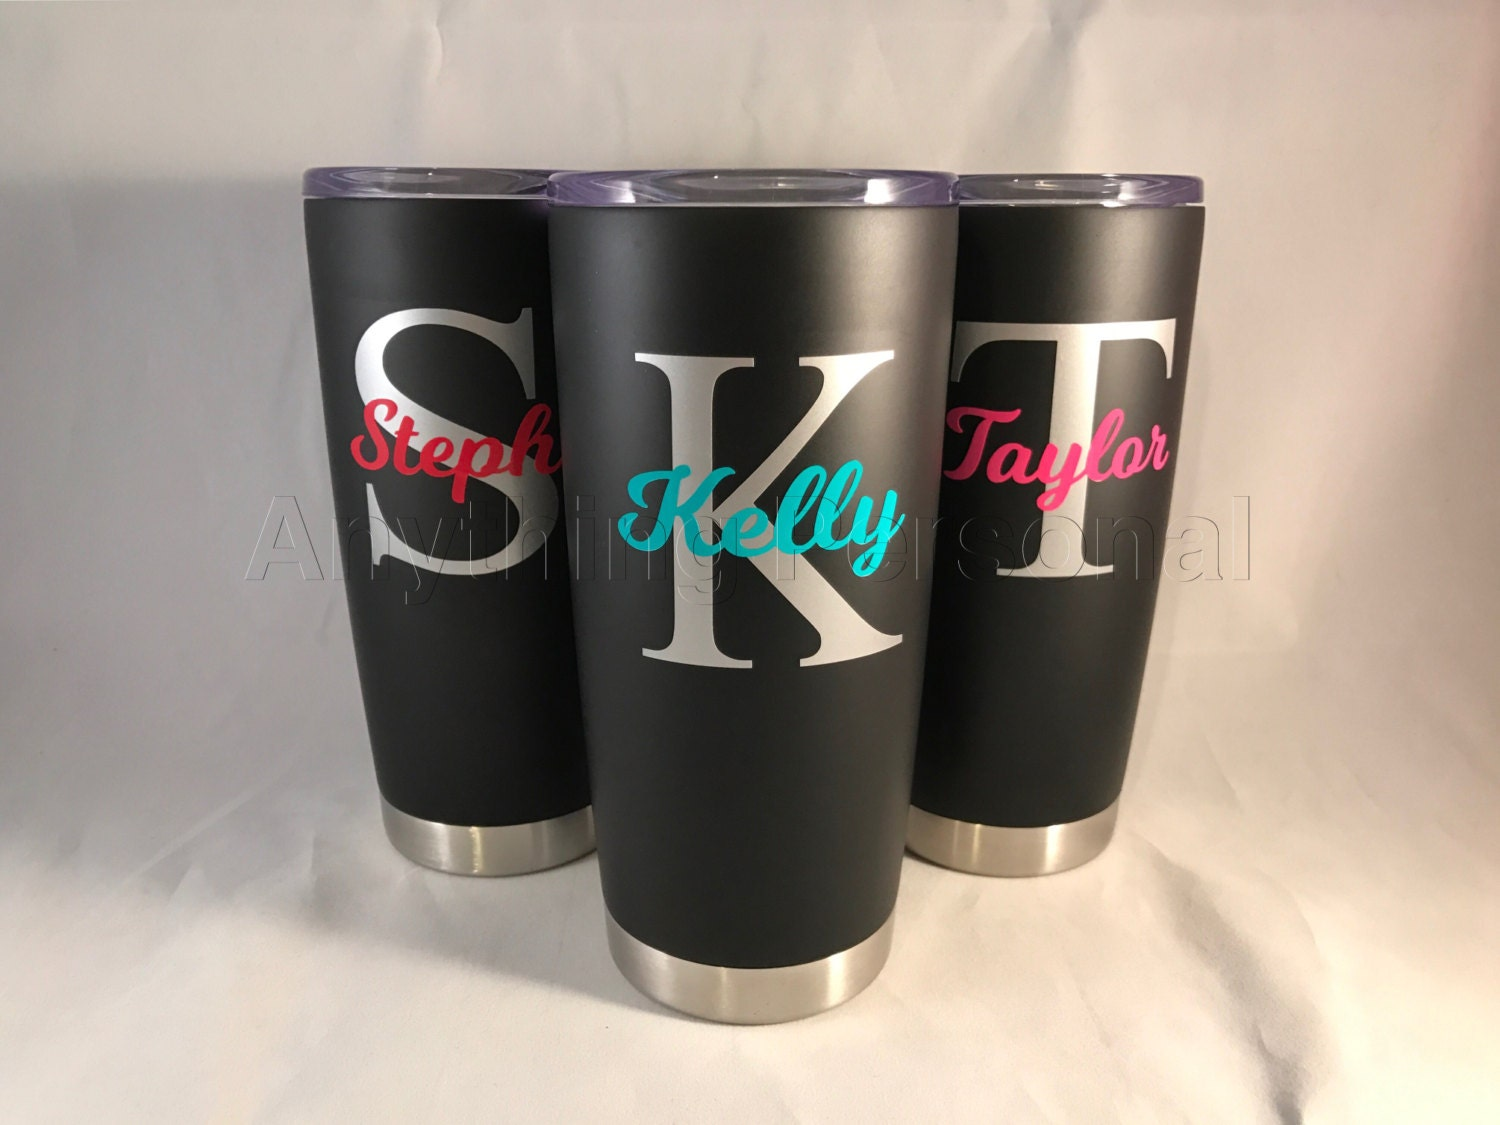 0aed13ea7bc Personalized Stainless Steel Cup, Personalized Stainless Steel Tumbler,  Personalized Cup, Personalized Gift, Beach Cup, Bridesmaid Tumbler